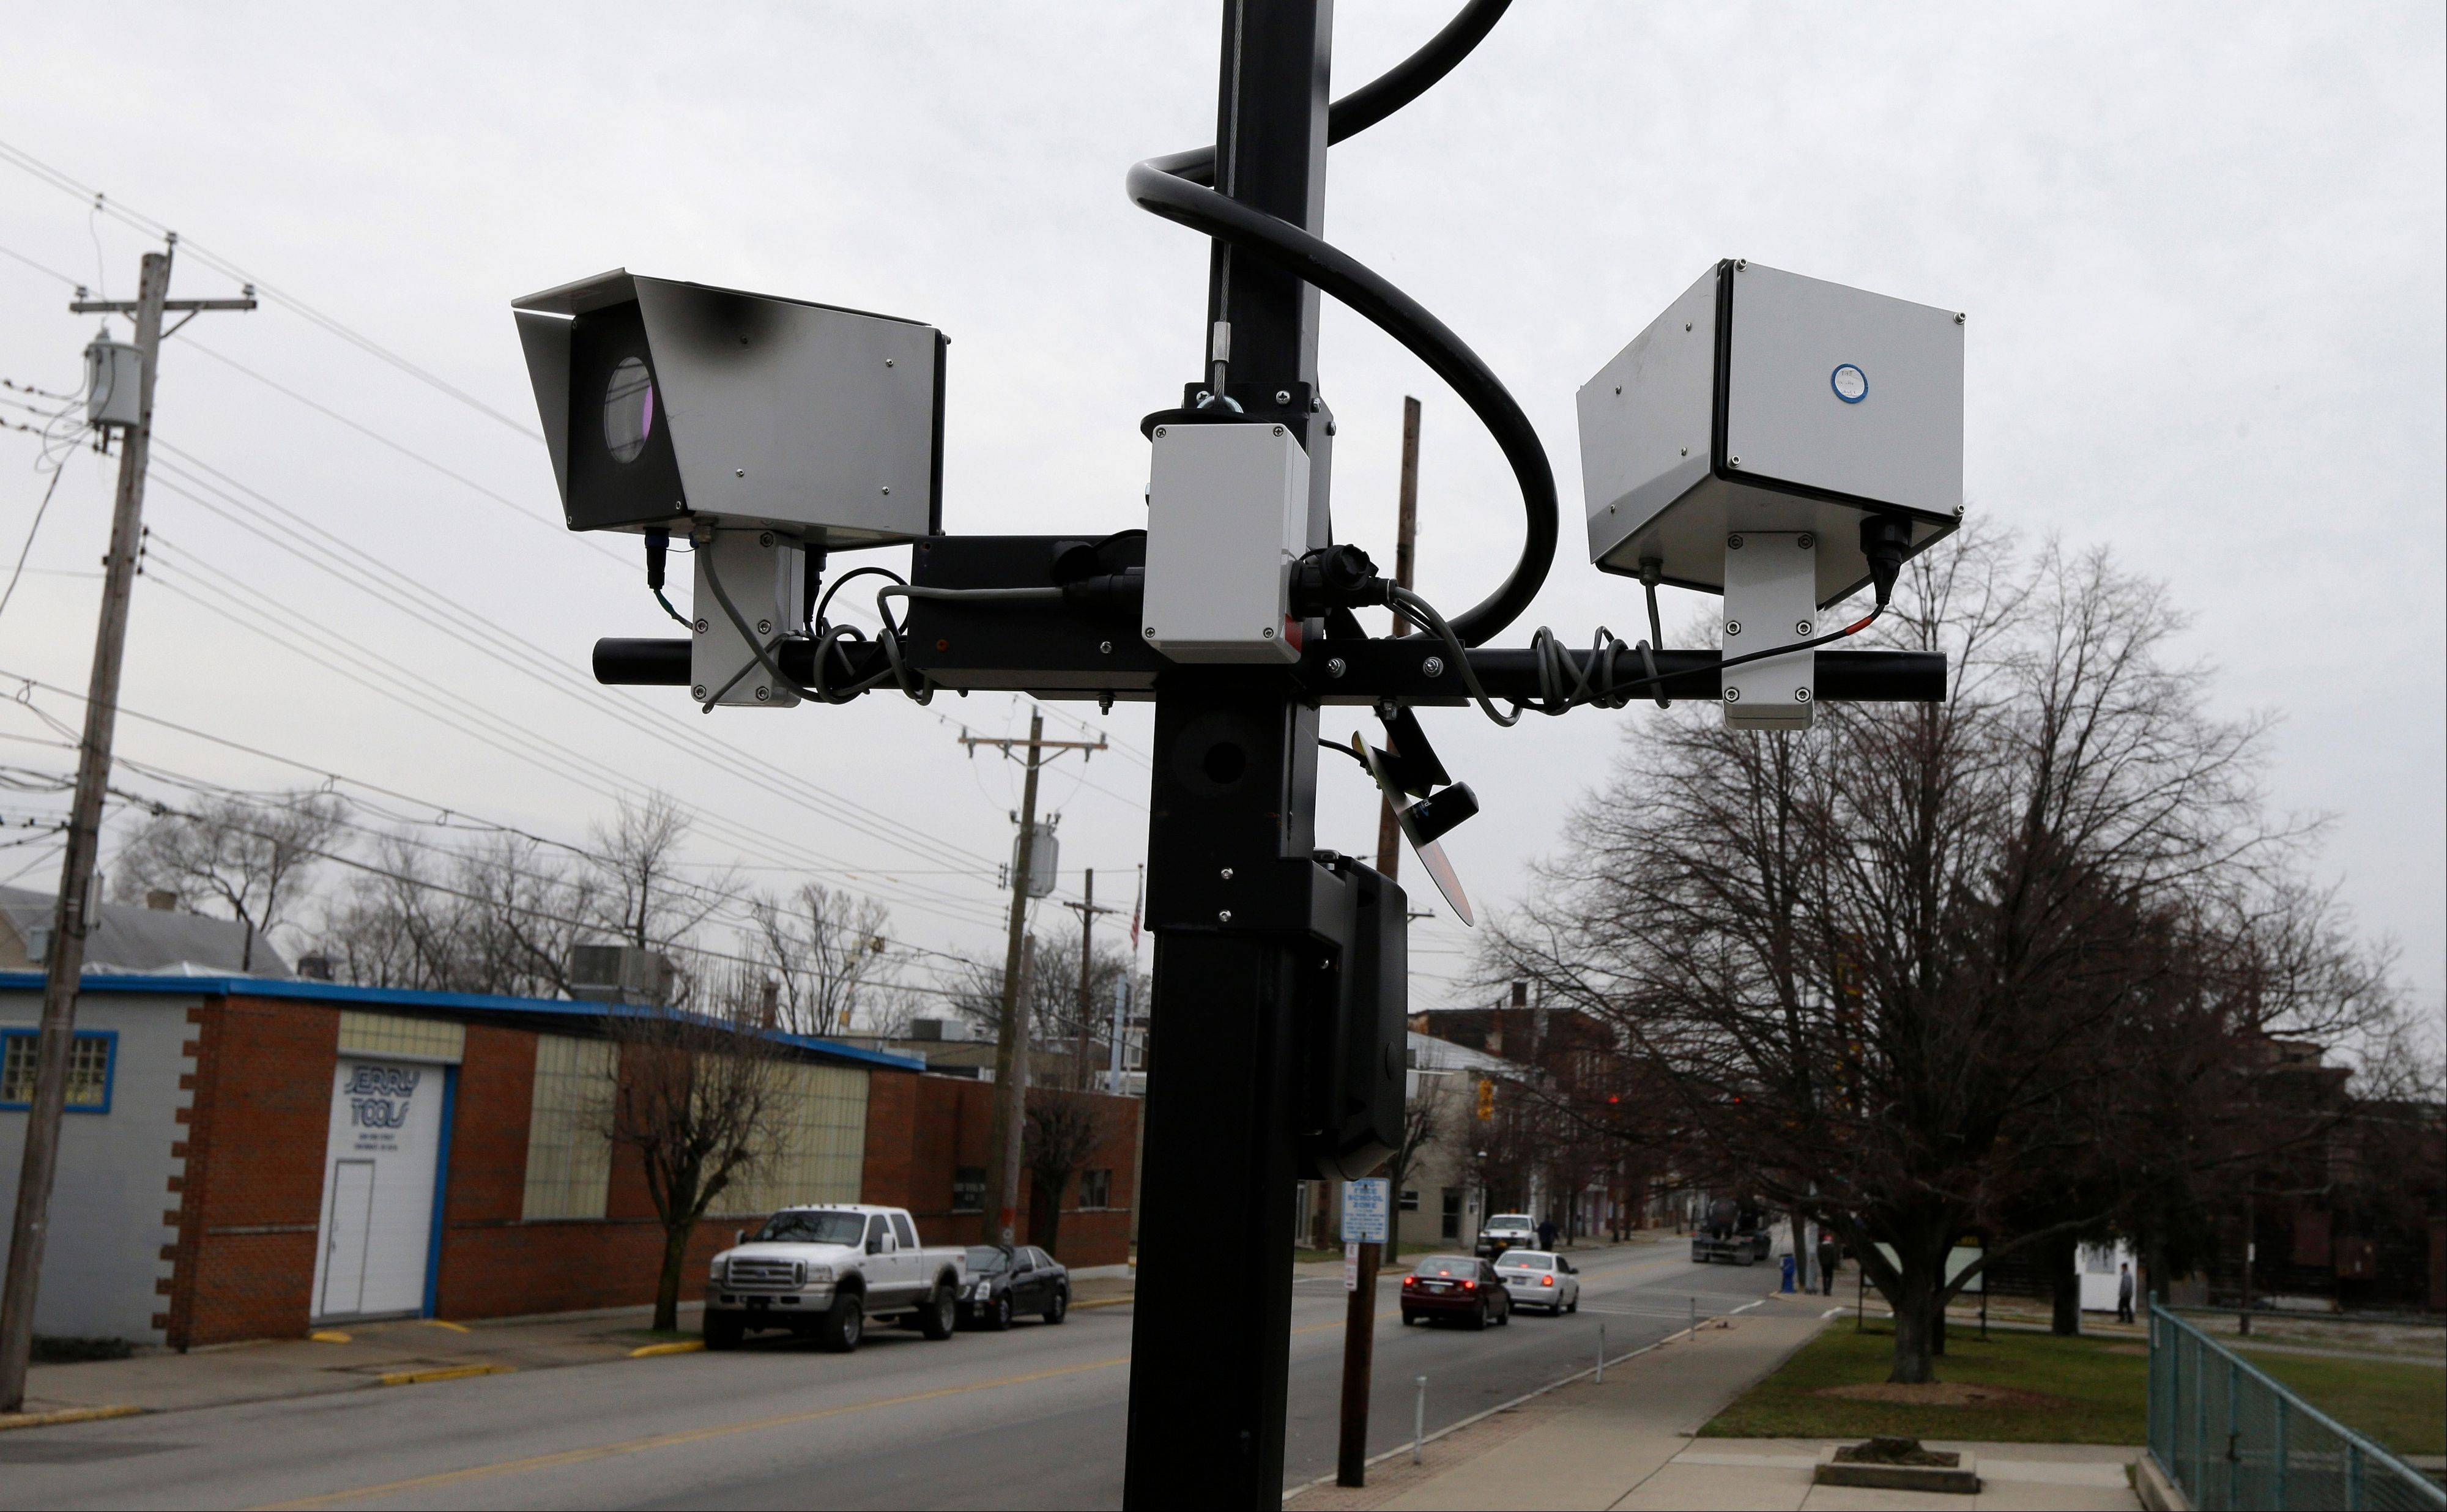 A pair of traffic cameras on Vine Street in Elmwood Place, Ohio. The village was on pace to assess $2 million in traffic fines in six months until a lawsuit brought a ruling from a judge forcing the village to stop using the cameras. The village is appealing the ruling.